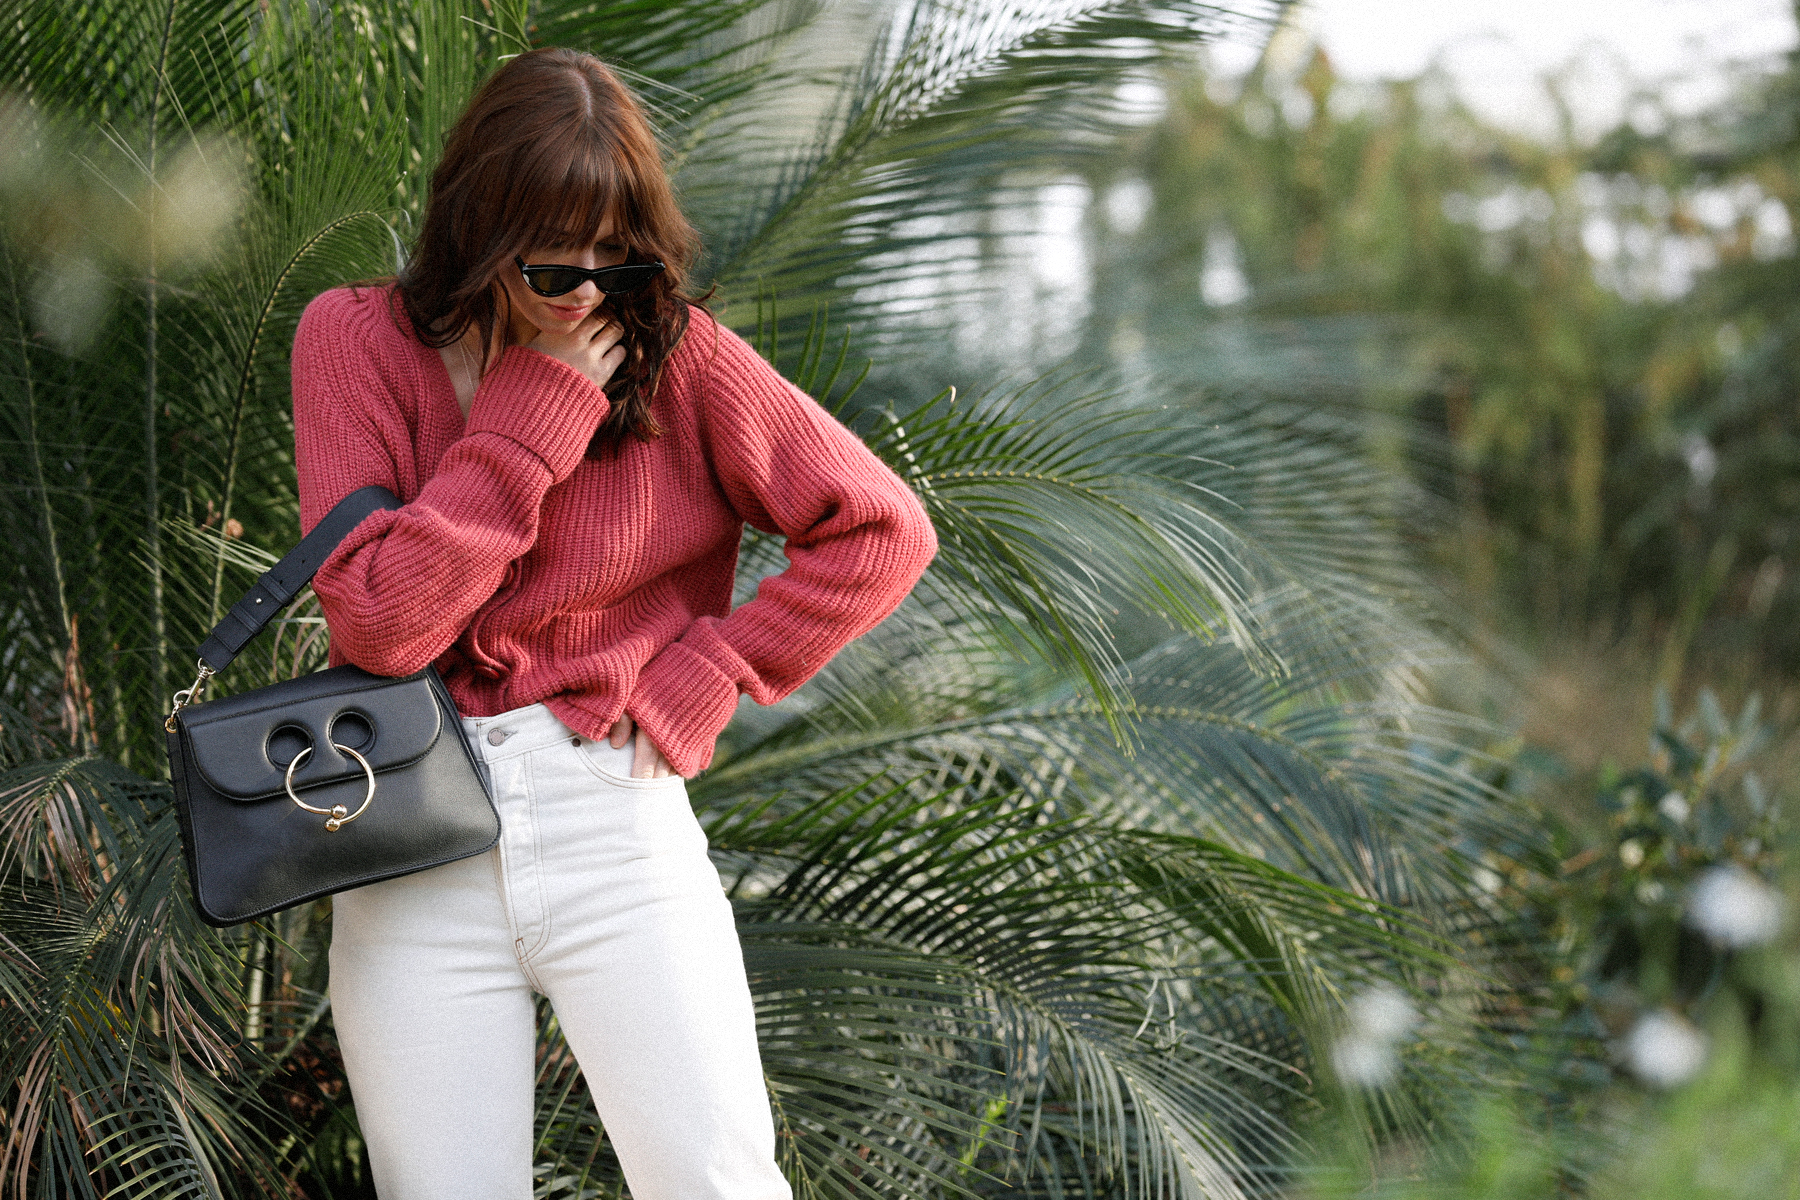 outfit palm trees holiday in winter garden summer spring red cardigan parisienne style pierce bag j.w. anderson white jeans flattered slippers cat-eye sunglasses last lolita le specs adam selman ricarda schernus catsanddogbslog modeblogger düsseldorf 4